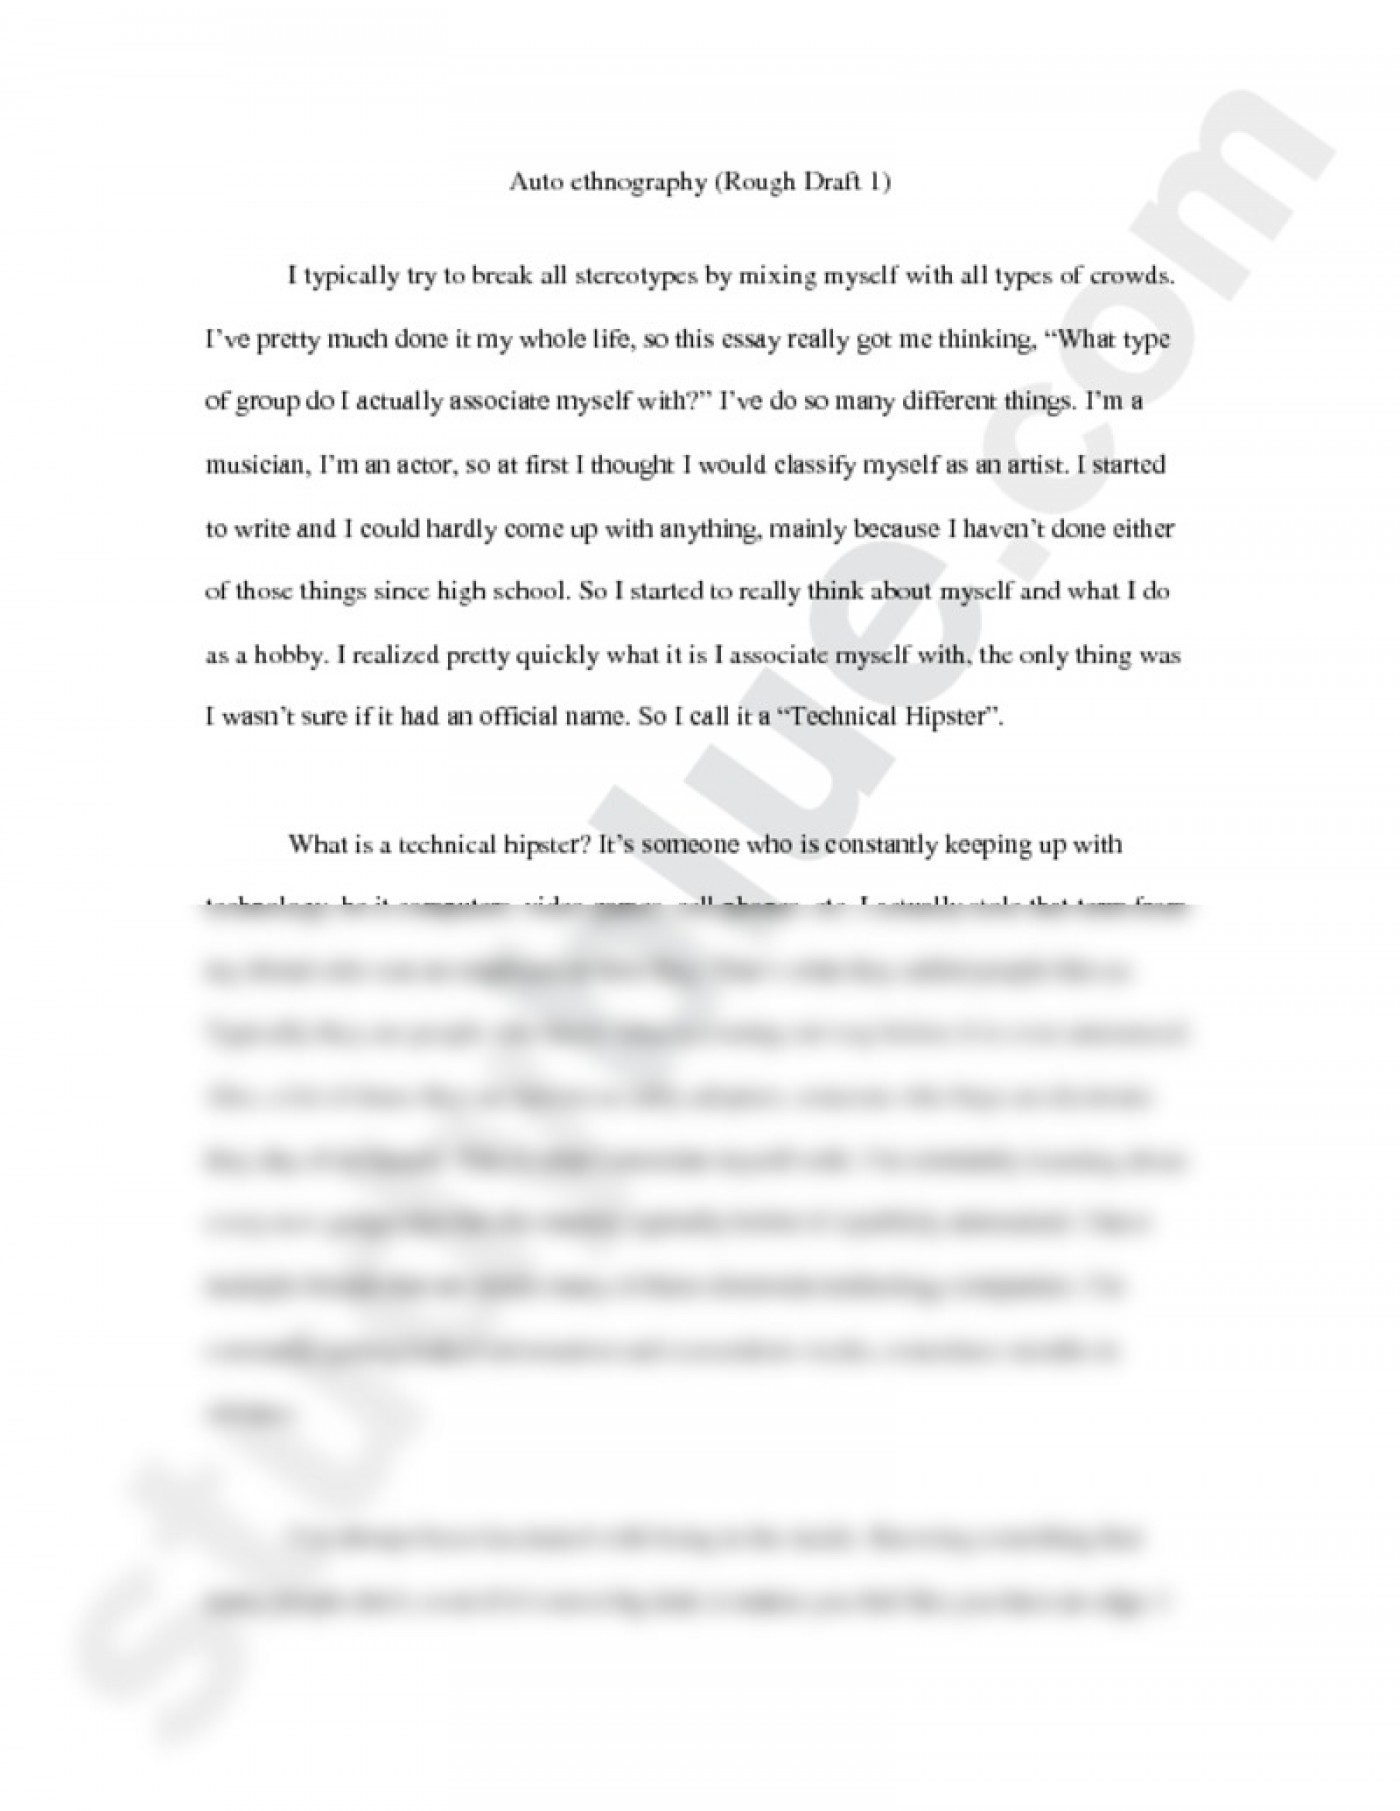 001 Autoethnography Example Rough English With Clarke Examples Ofs L Best Essays Essay Pdf Sample 1400